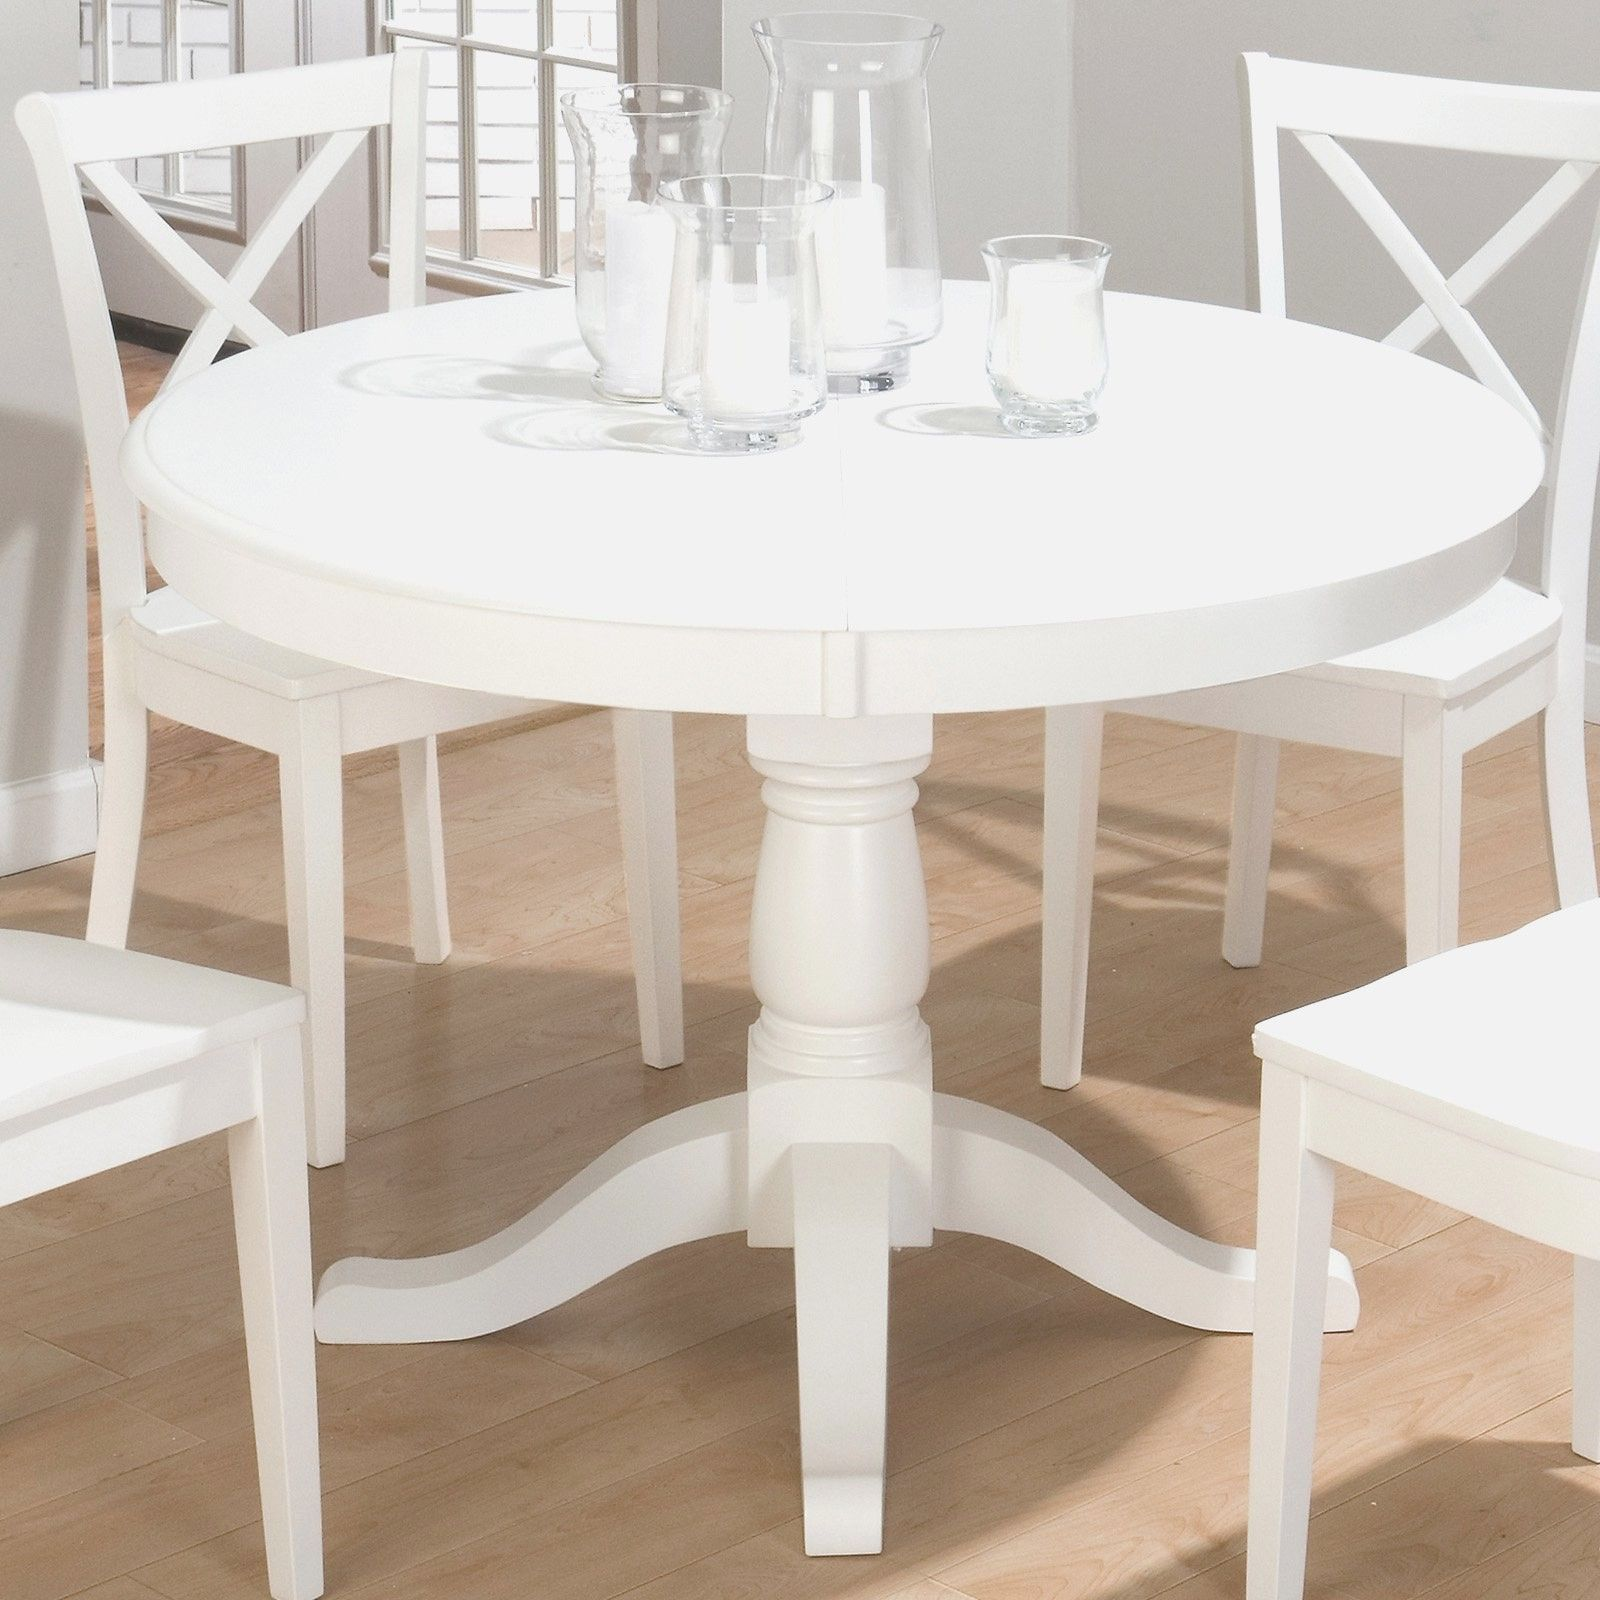 Small Round Kitchen Table Sets - r, round kitchen table sets, round ...